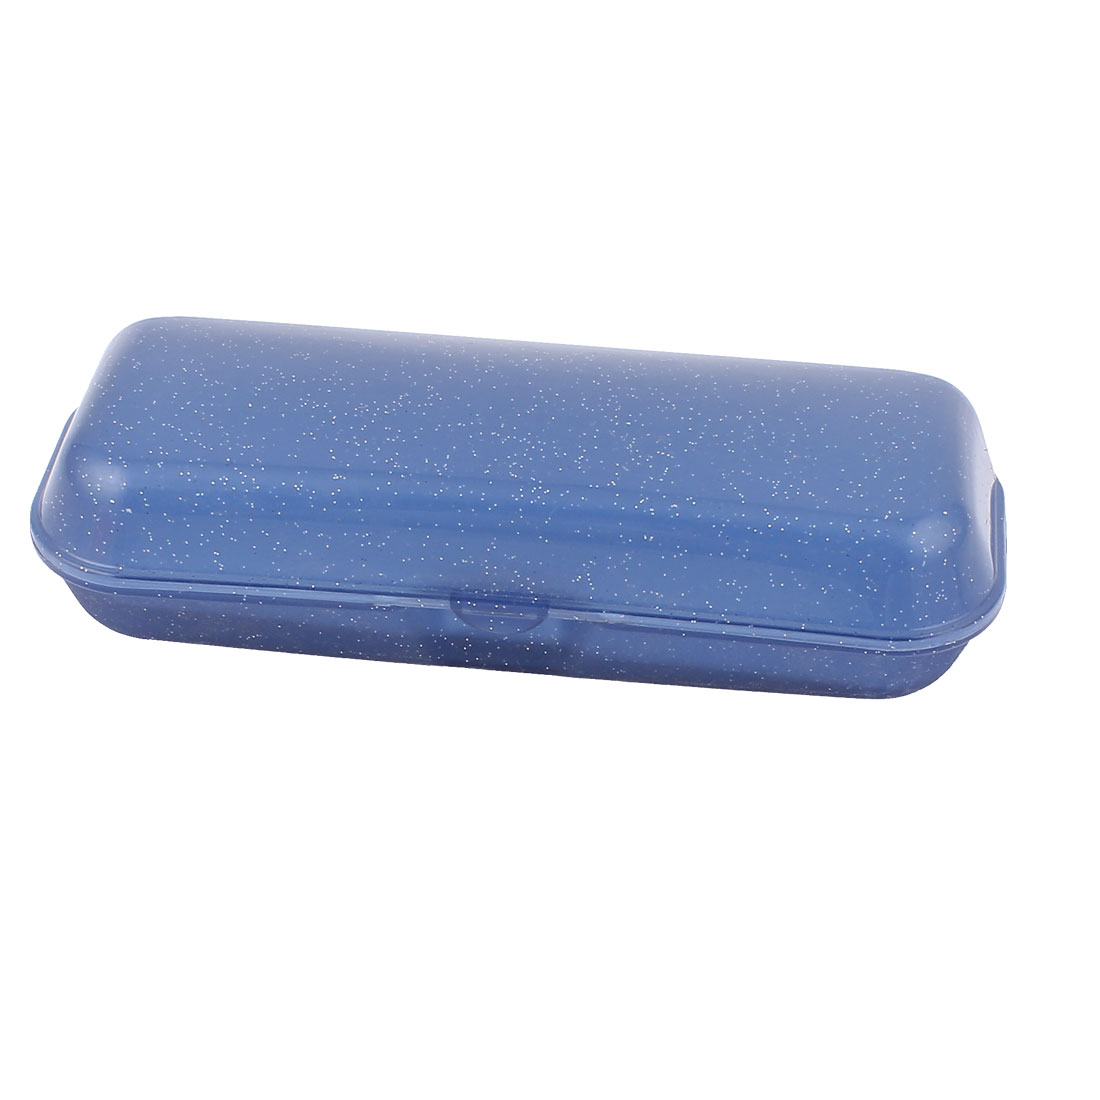 Eyeglass Sunglass Dot Pattern Hard Case Eyewear Storage Box Blue